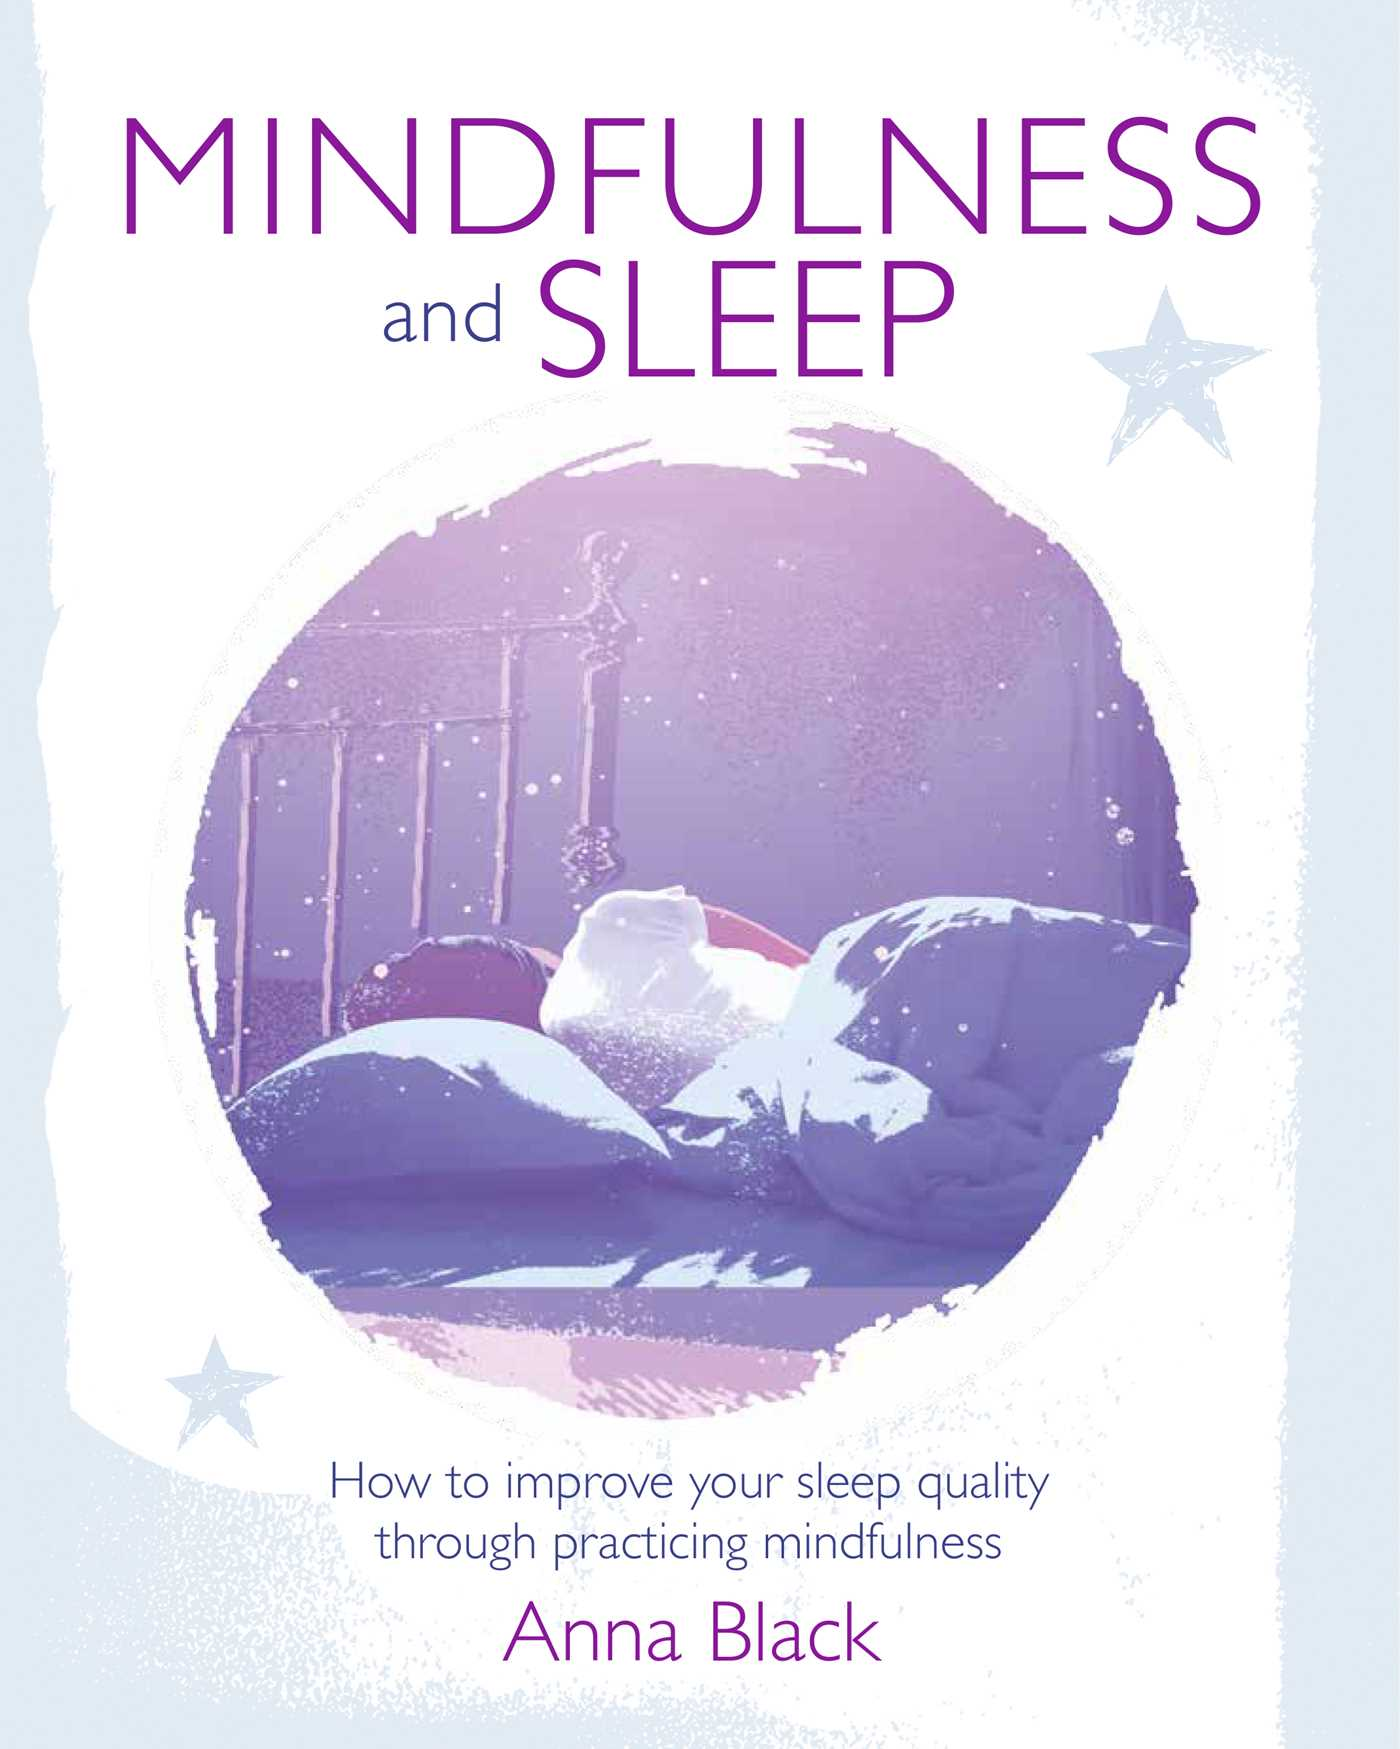 Mindfulness and sleep 9781782495604 hr